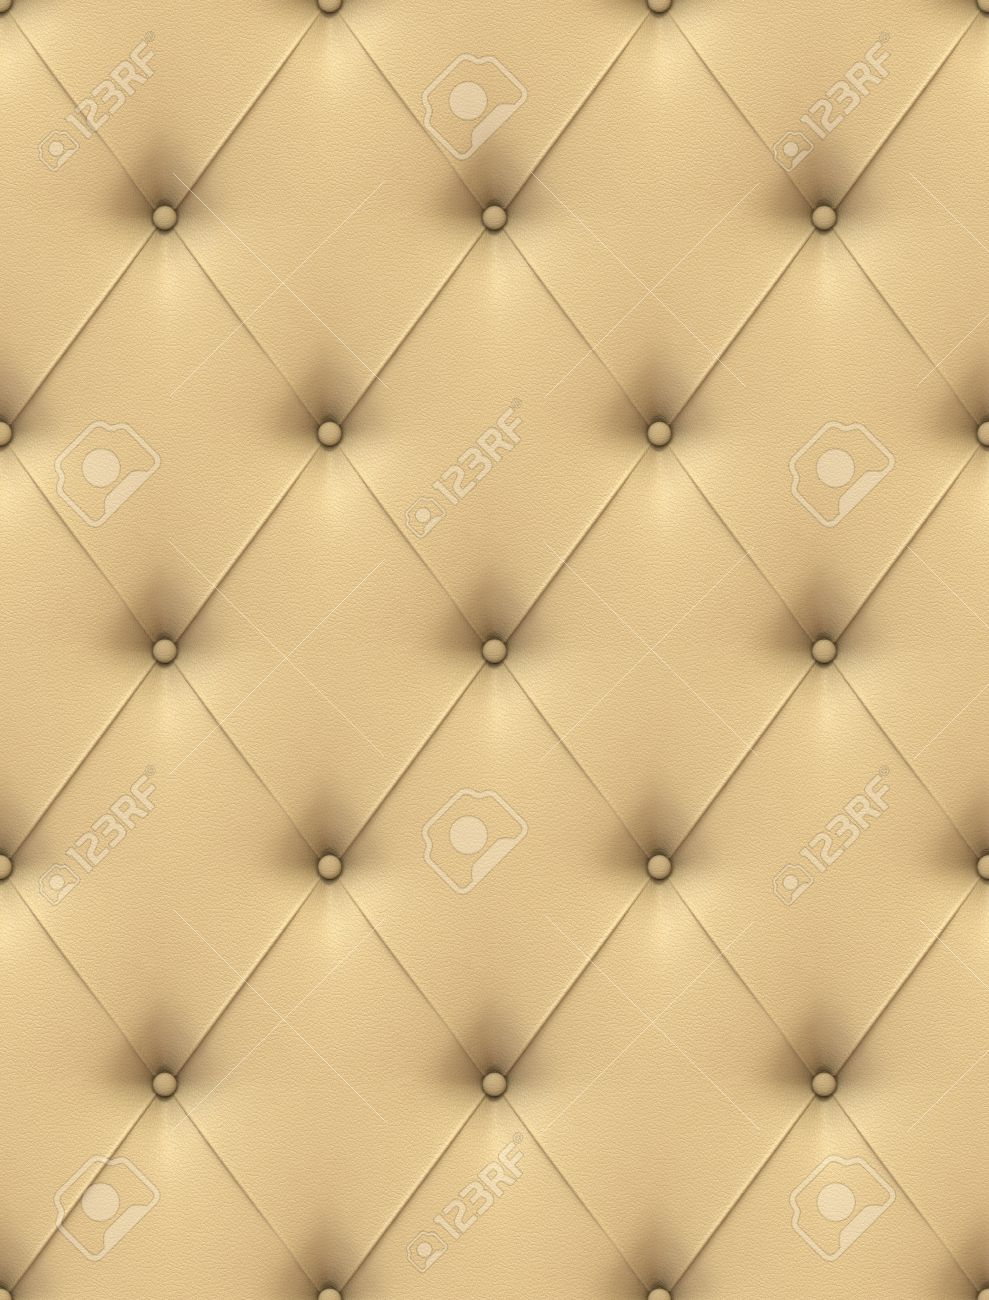 Seamless Tile Able Texture Of A Beige Leather Upholstery With Great Detail Similar Textures On My